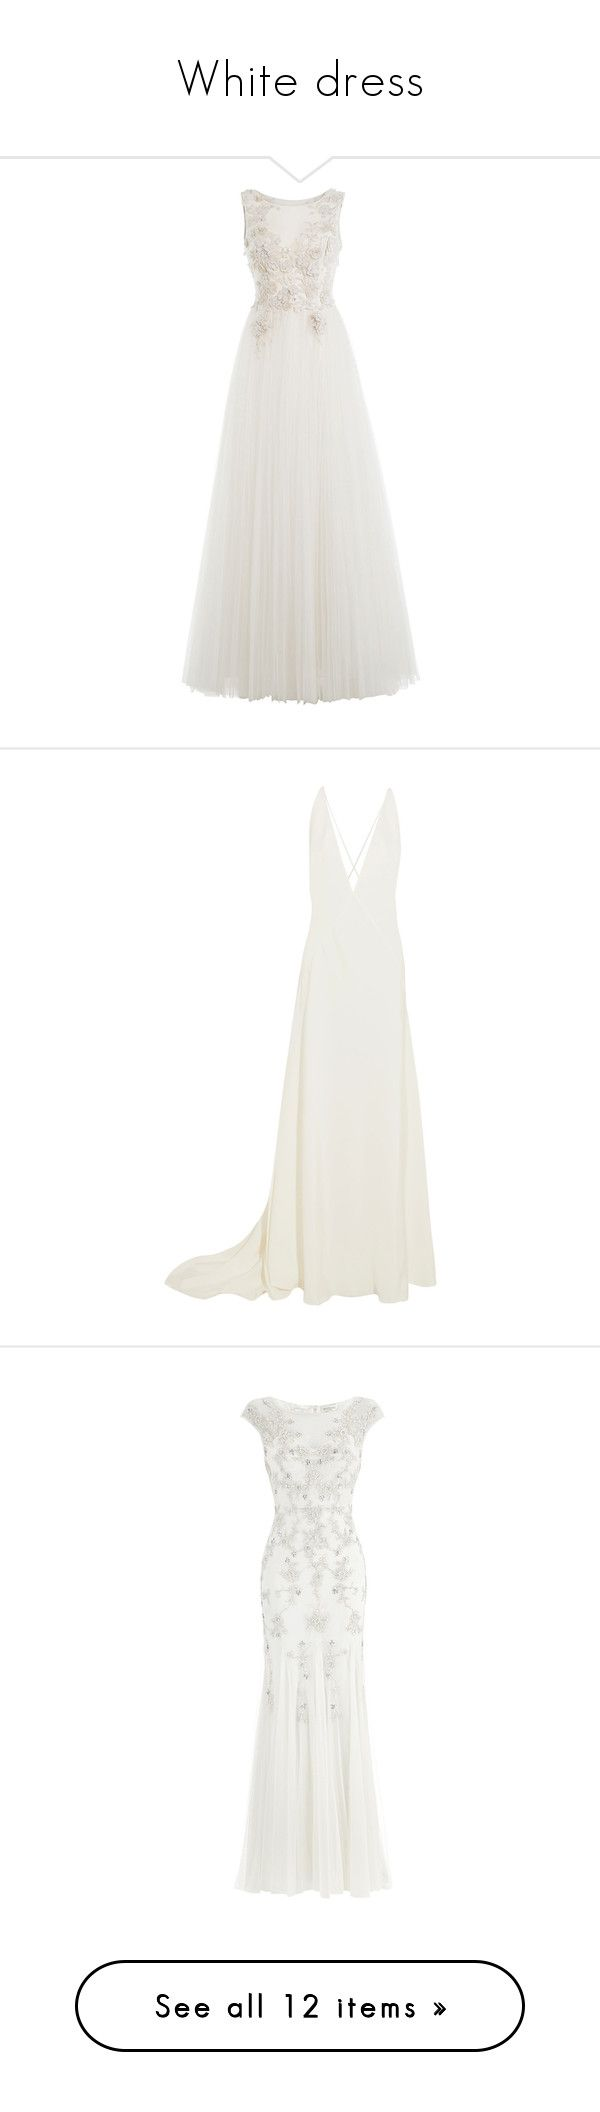 """""""White dress"""" by llviktoria ❤ liked on Polyvore featuring dresses, gowns, long dresses, white, bridal gowns, white gown, white tulle dress, beaded gown, bridal dresses and vestidos"""